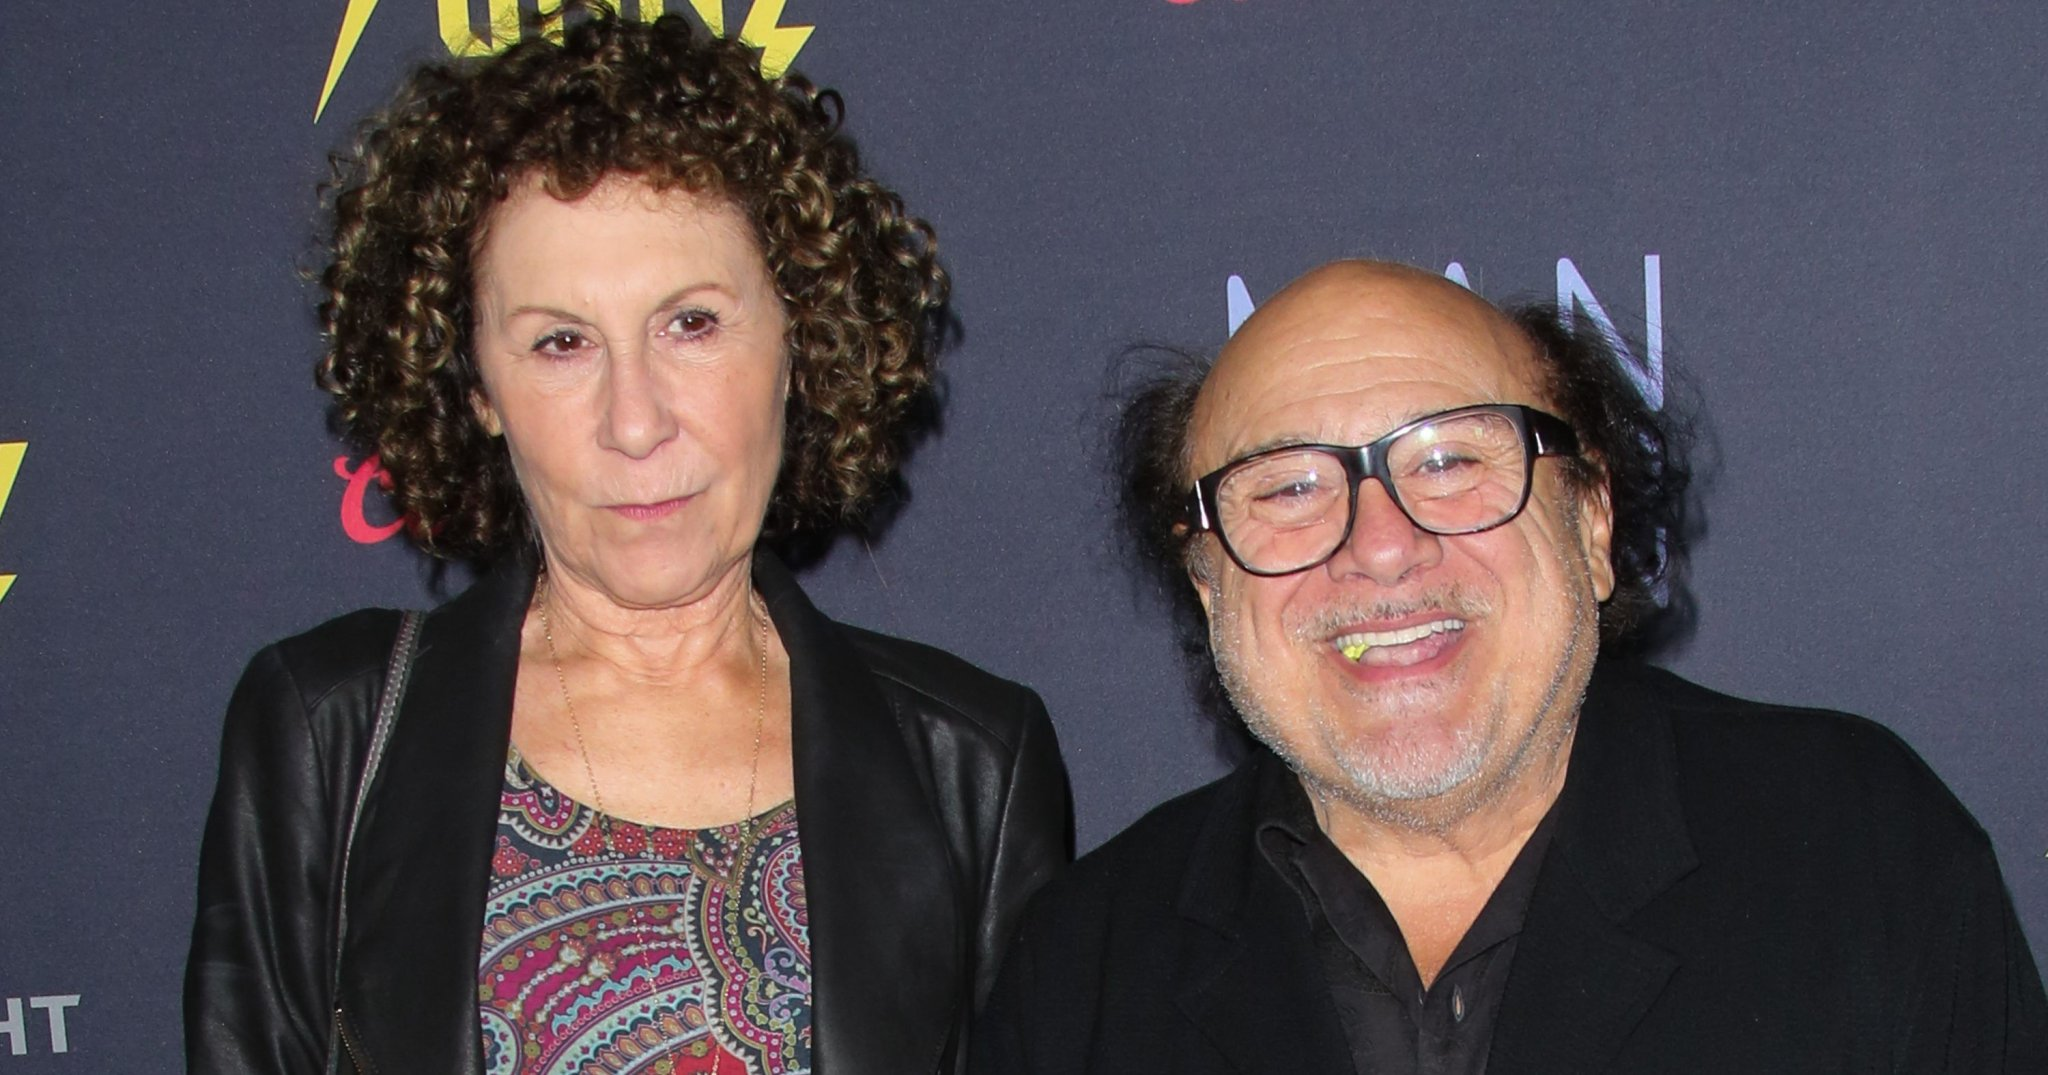 10 Interesting Facts About Danny DeVito And Rhea Perlman's Marriage